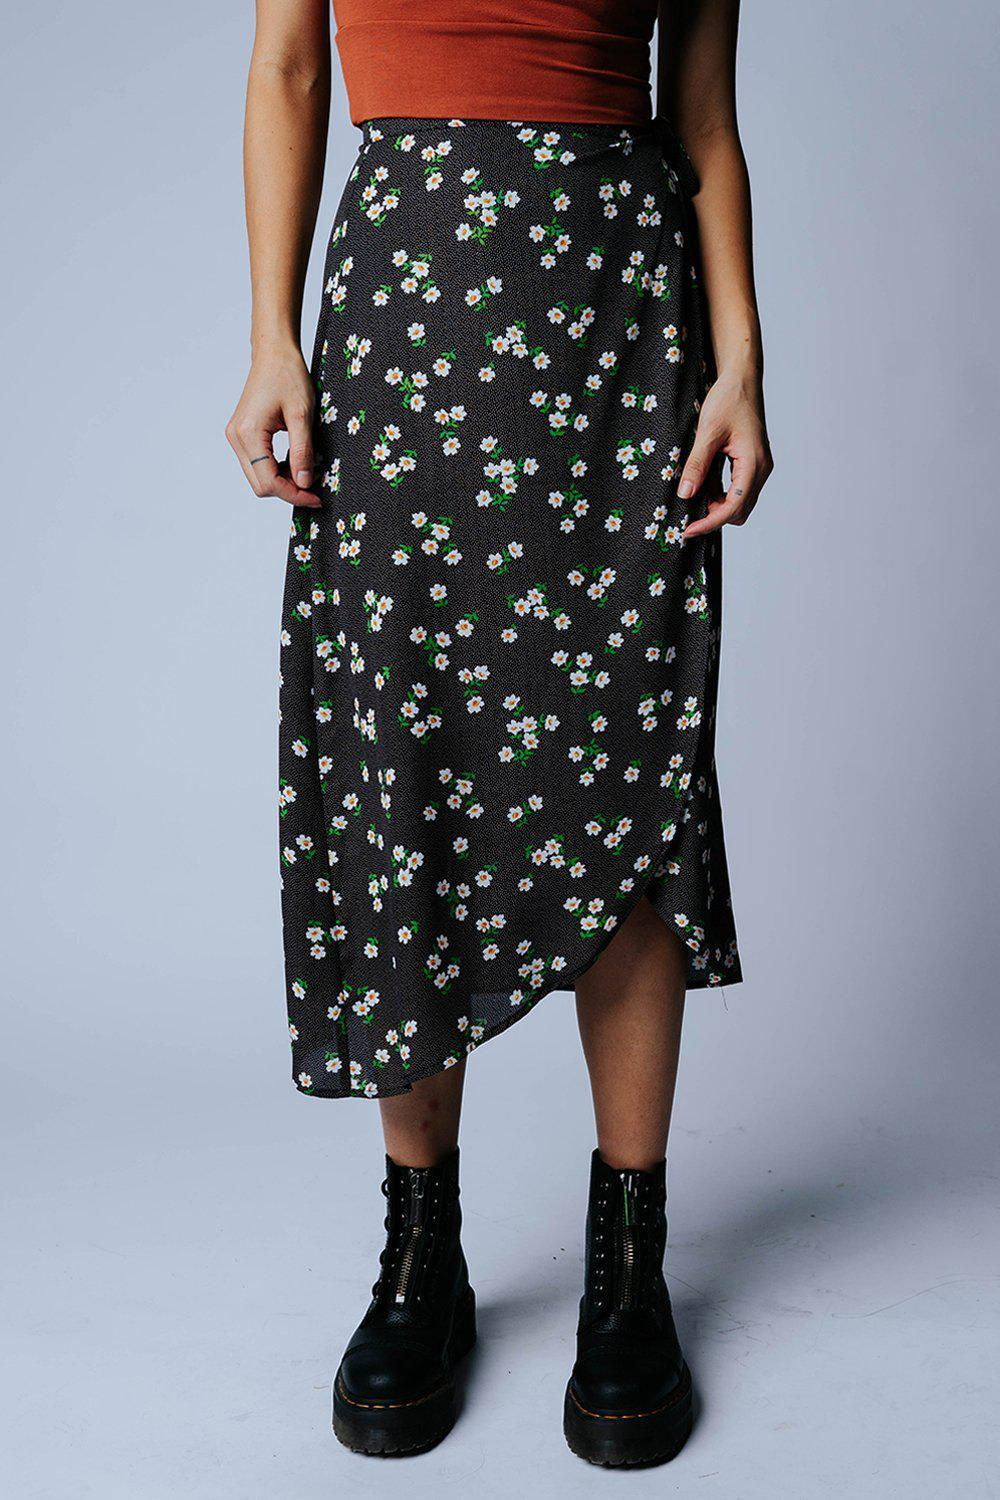 That's My Girl Floral Midi Skirt in Ivory Combo, cladandcloth, n/a.